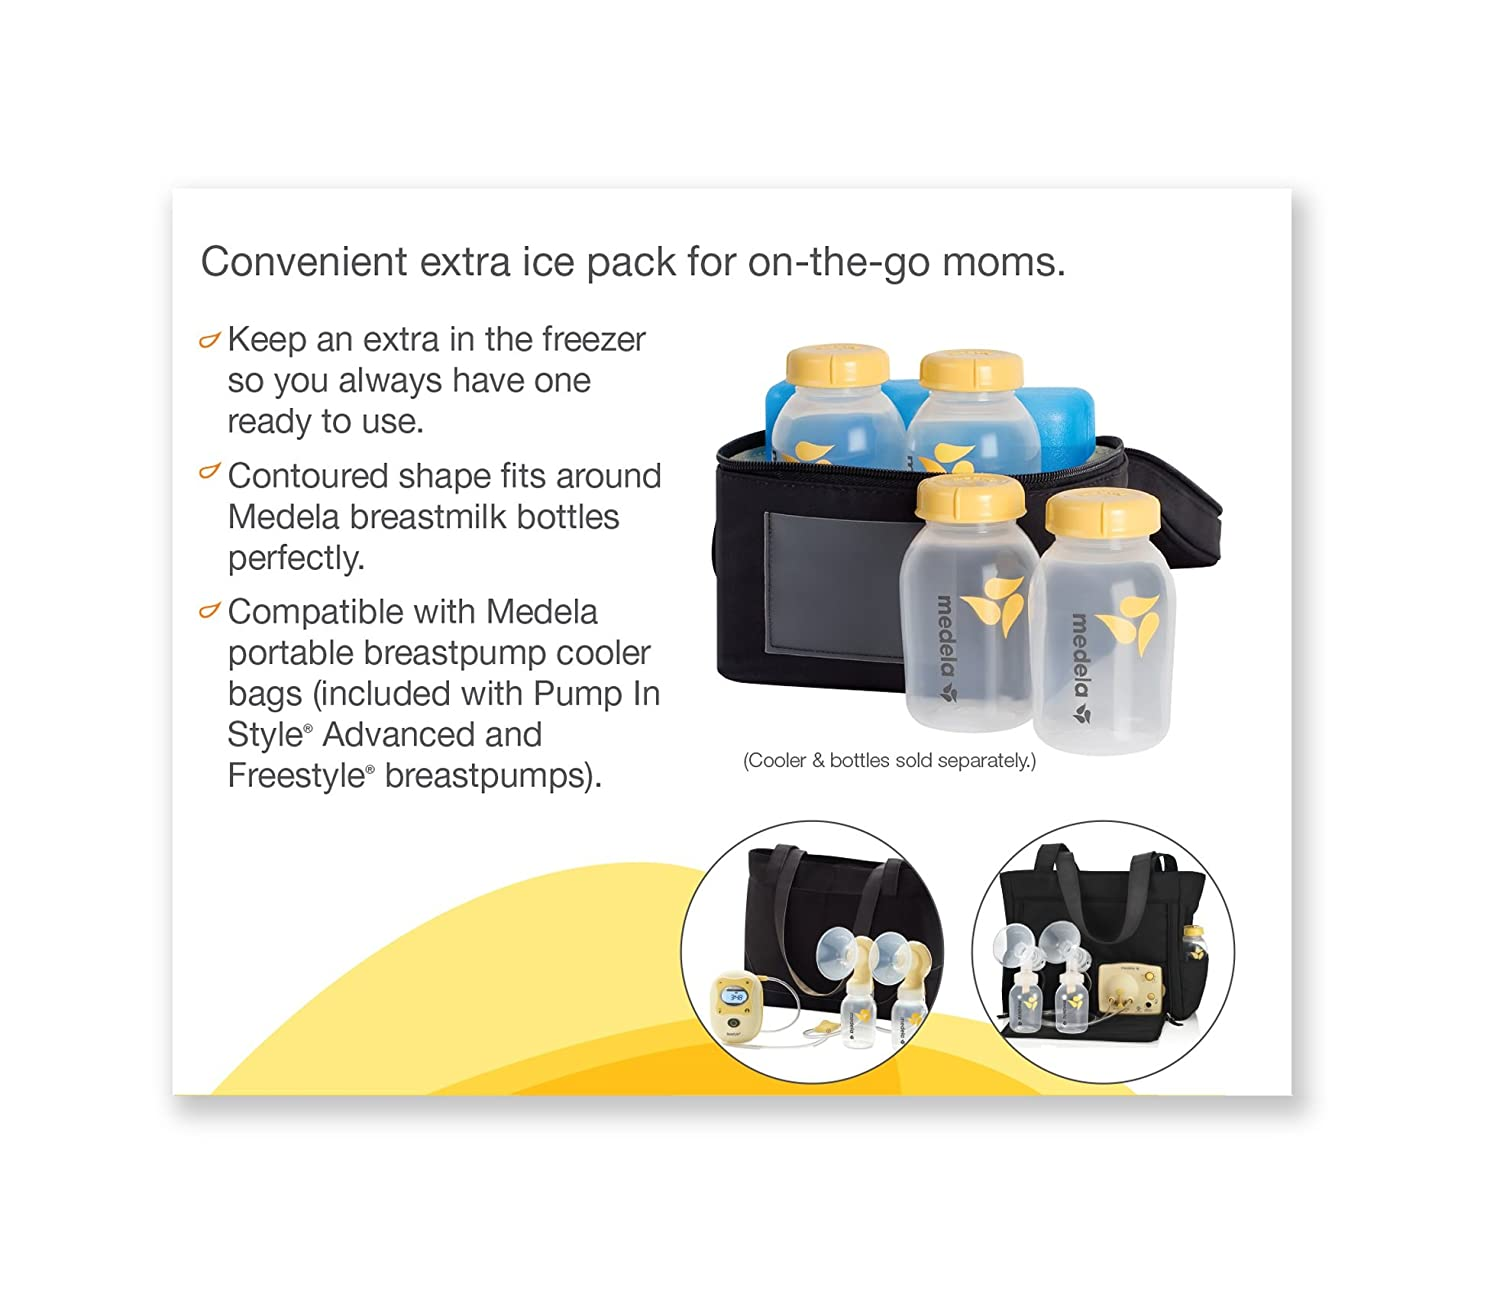 Medela Ice Pack for Breast Milk Storage, Contoured Shape Designed to Fit Breastmilk Bottles, for On The Go or Traveling Moms